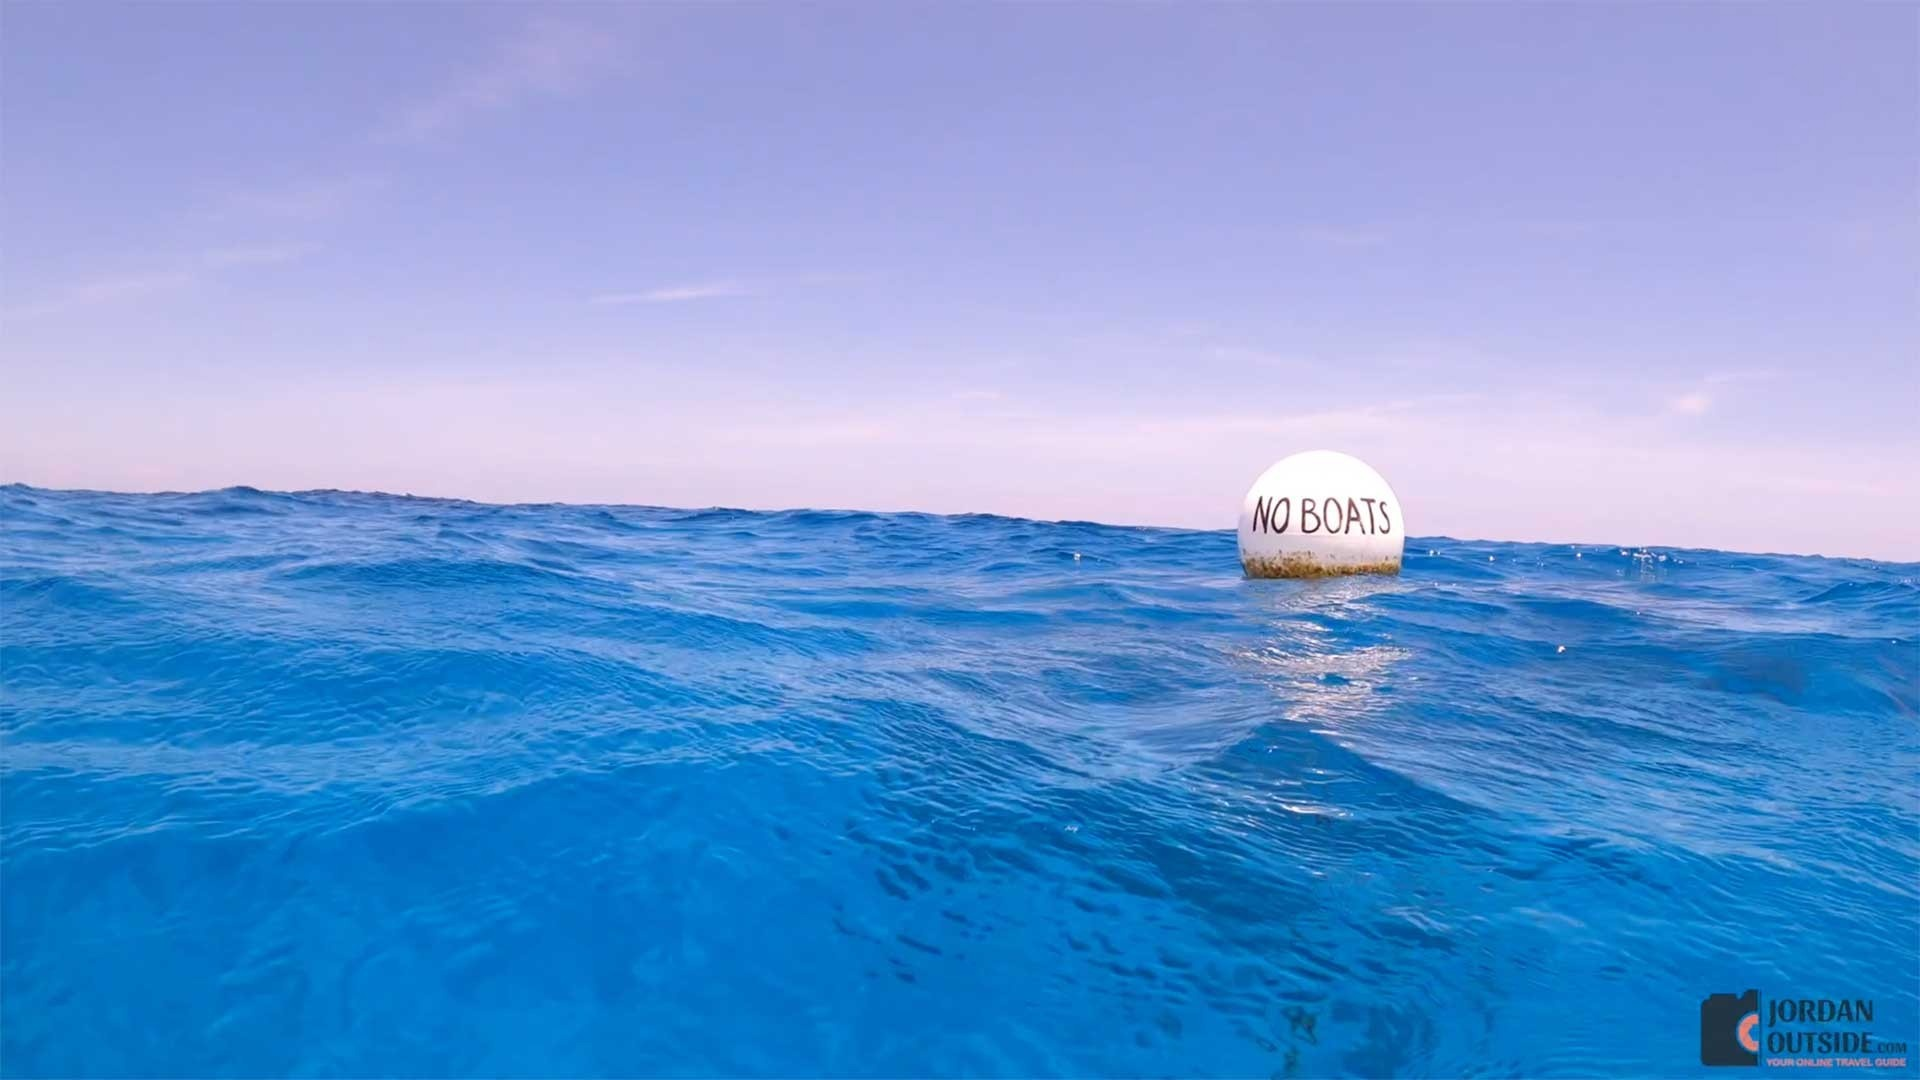 The white buoy that says No Boats